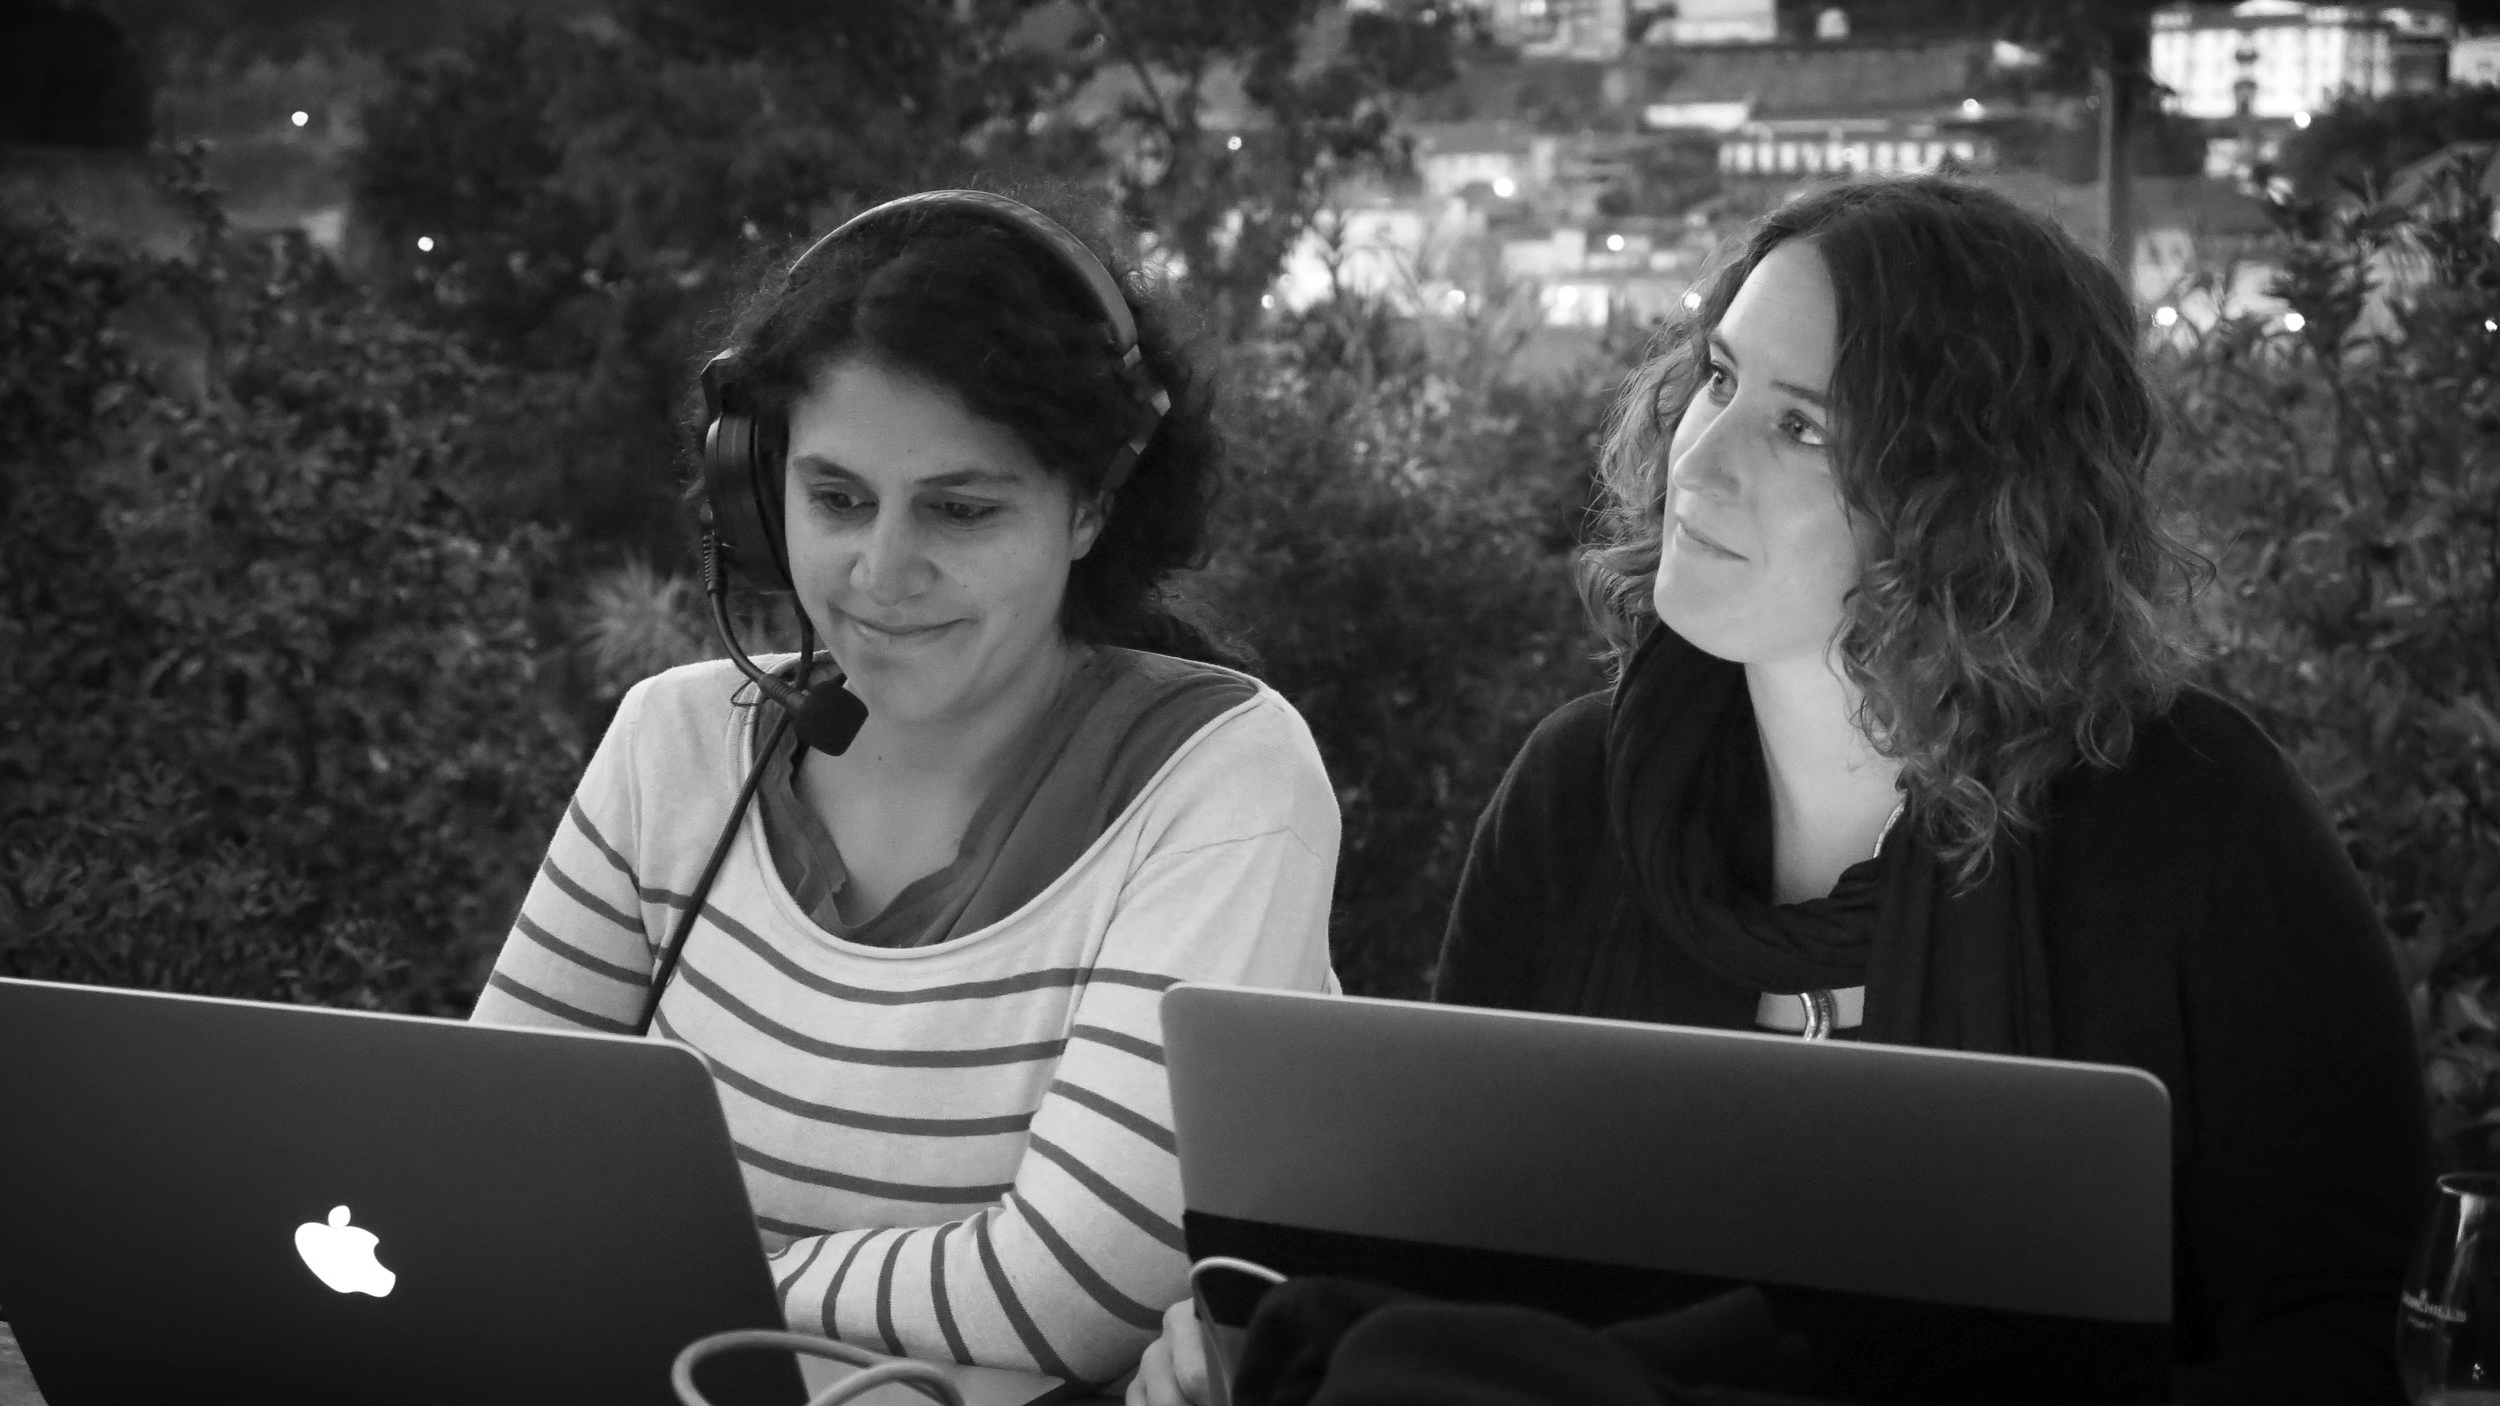 Back together on a project since 2005 !! Making creative interactive mapping in Porto, Portugal. What a nice place to regather !